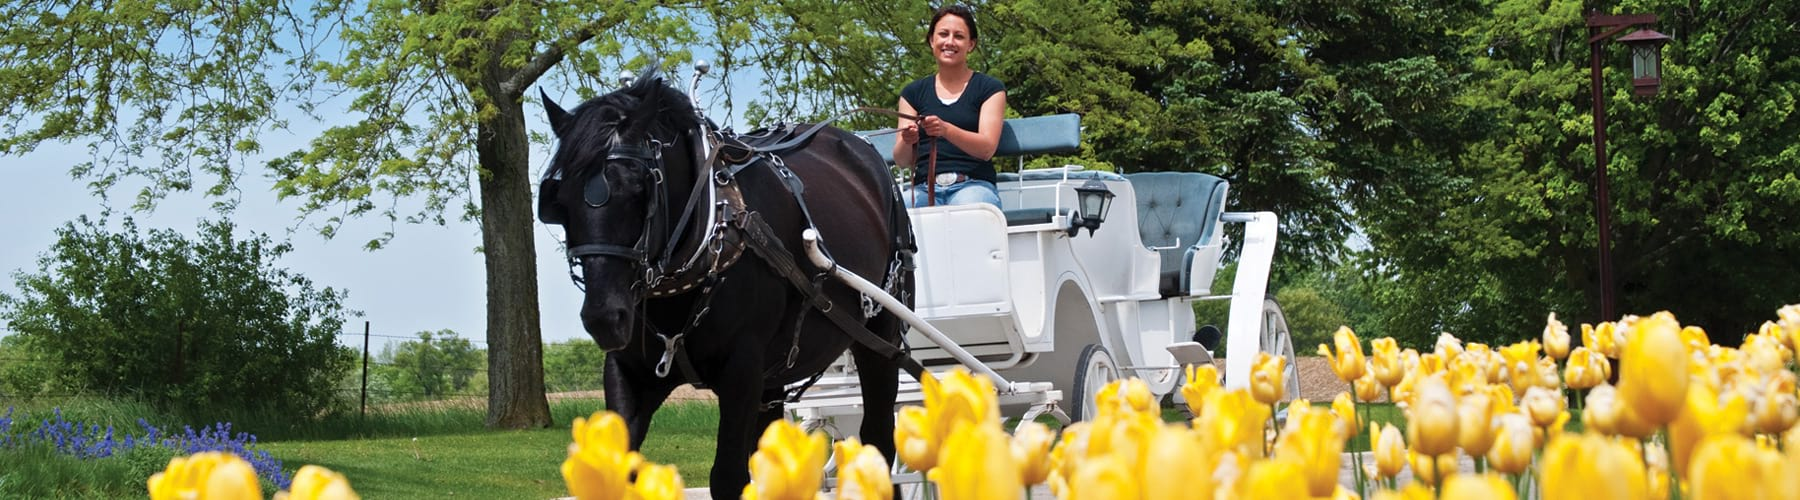 Spring Carriage Ride